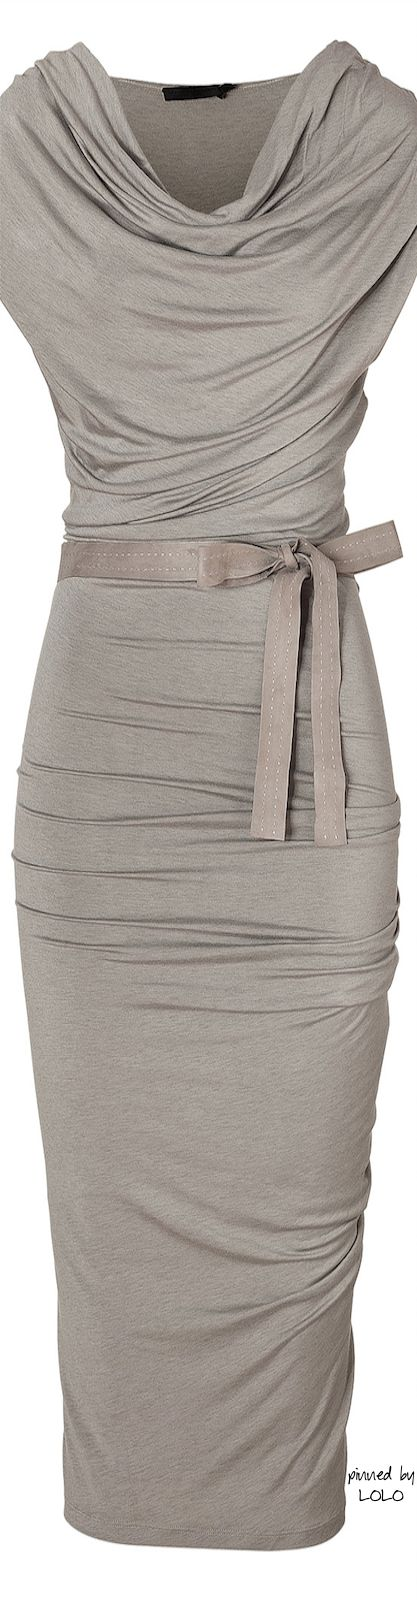 Donna Karan Hemp Draped Jersey Dress #CEO #CEO #shirt https://www.sunfrogshirts.com/search/?7833&cId=0&cName=&search=CEO